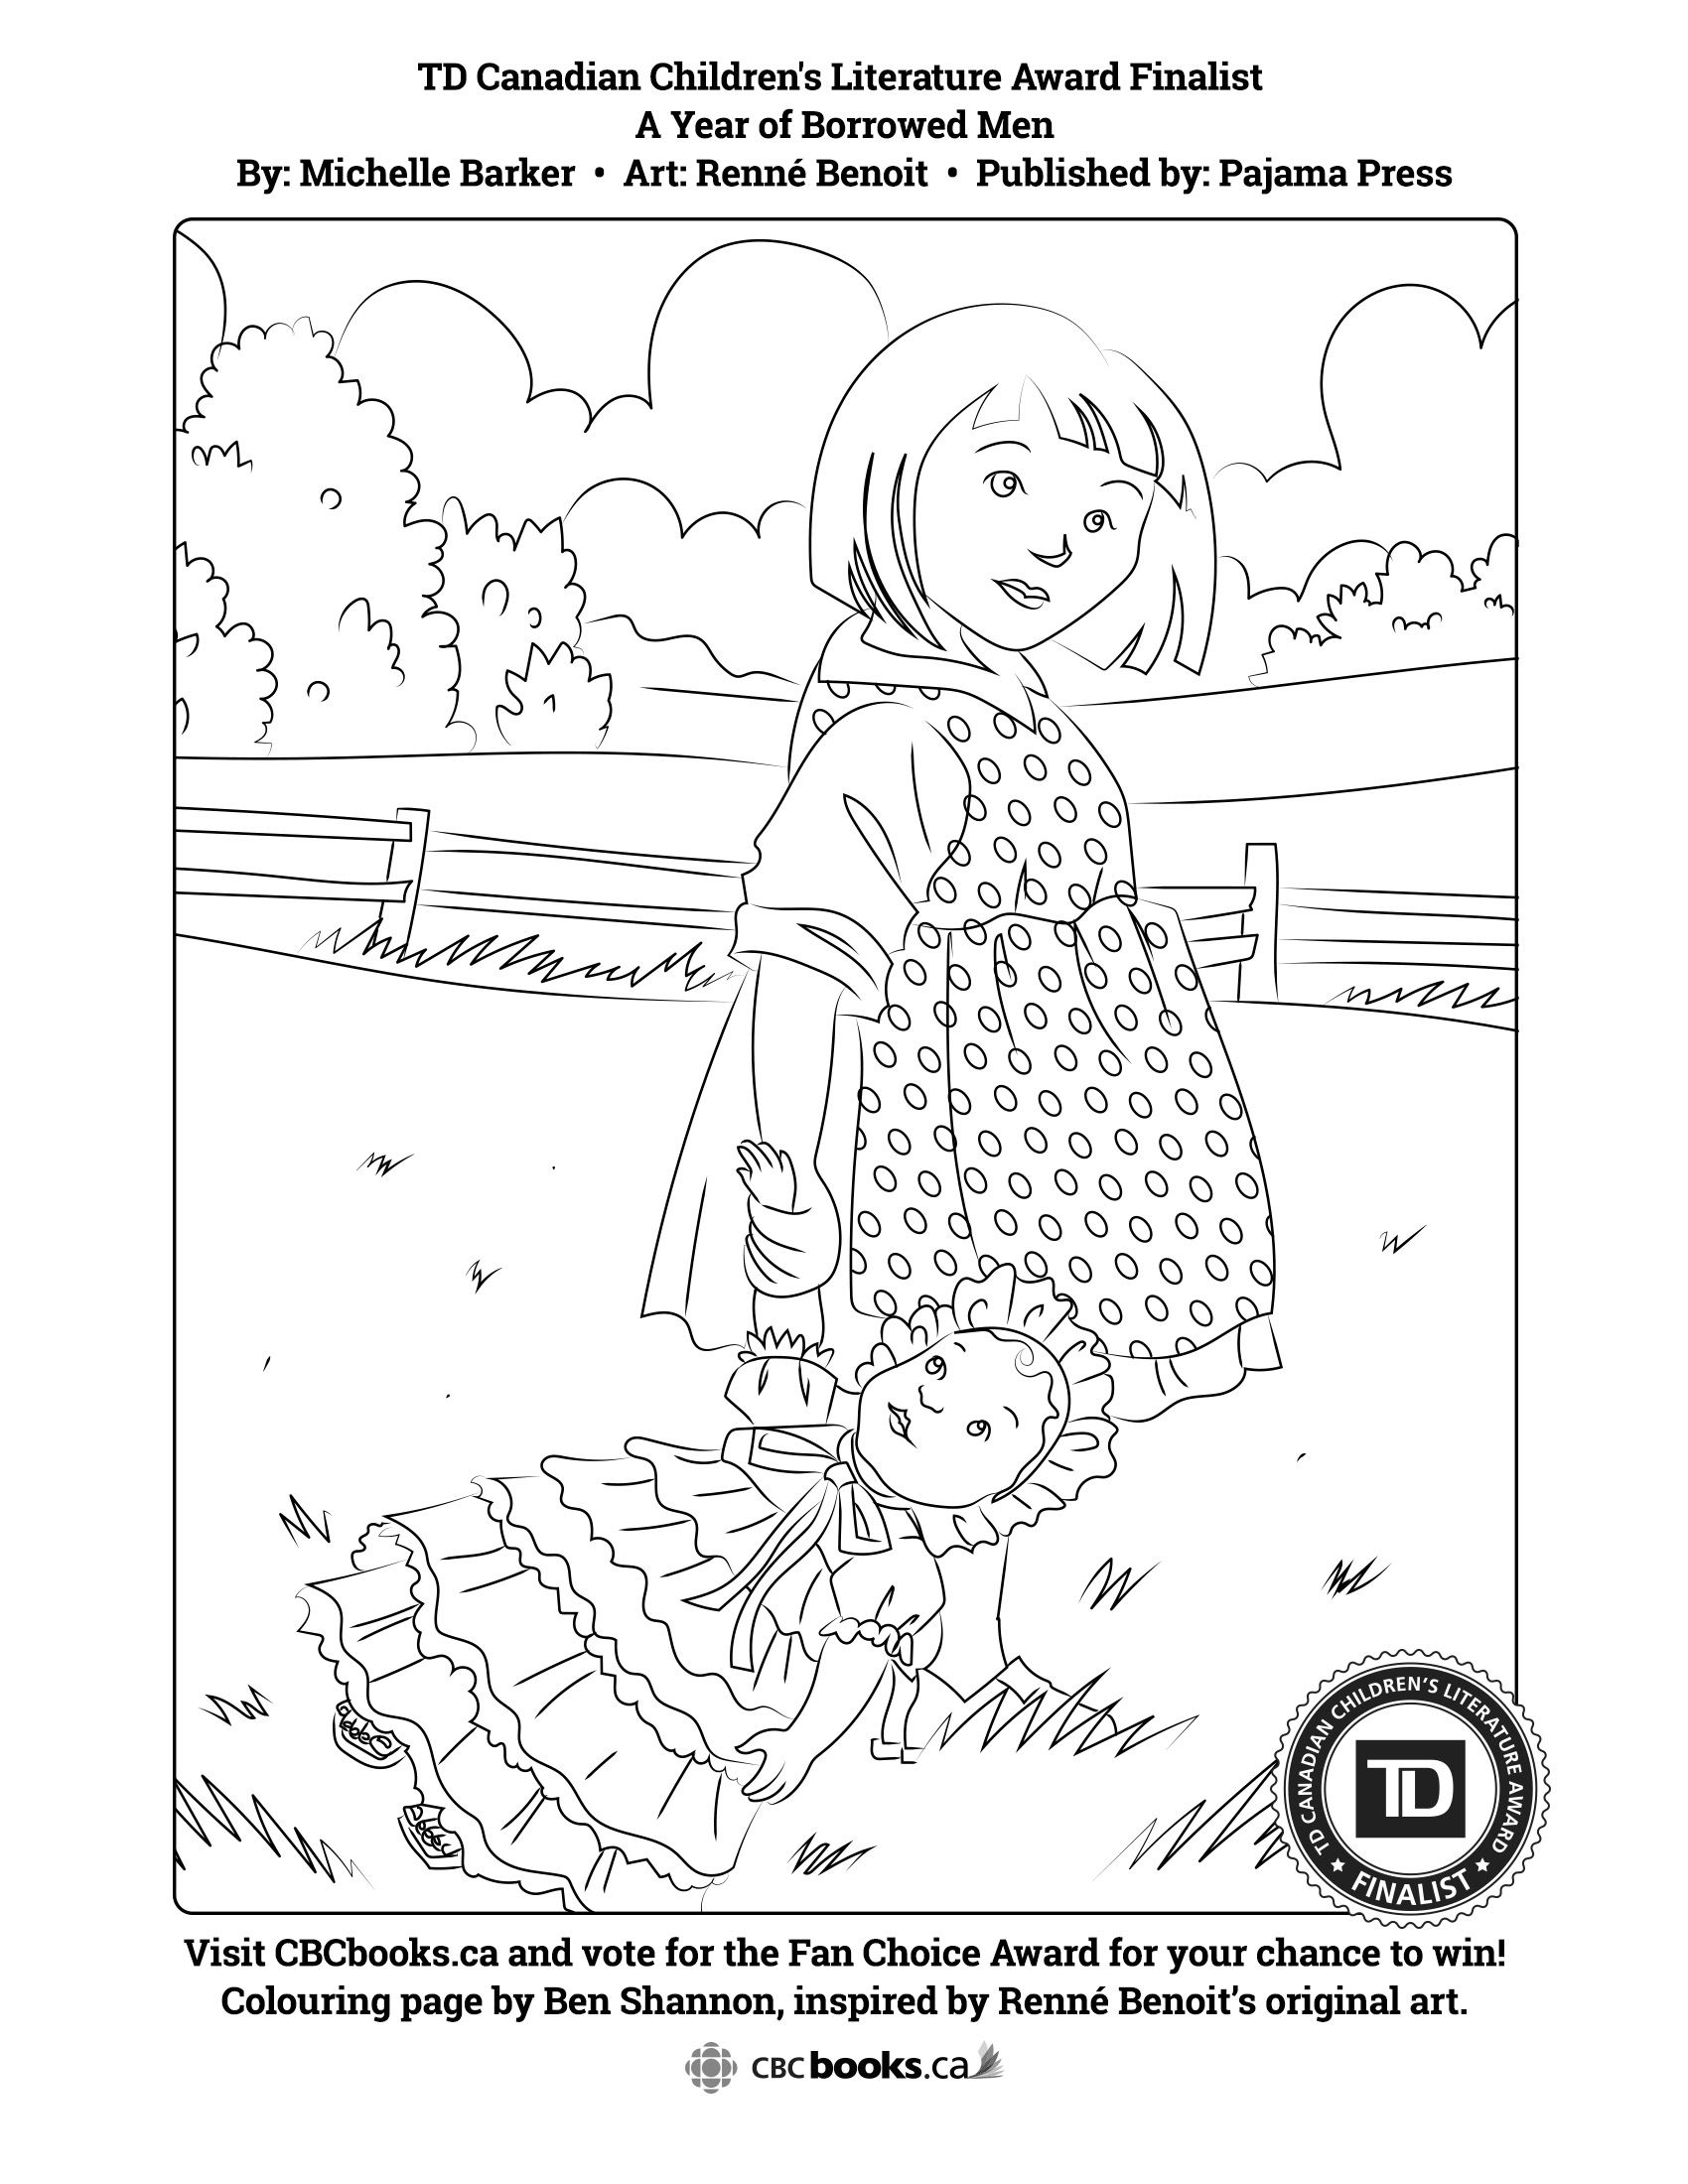 A Year of Borrowed Men colouring page drawn by Ben Shannon (a promotional material of CBC Books for the TD Children's Literature Award 2016) The TD Kids Fanchoice contest can be accessed by clicking the link. Enter for your chance to win books for you and your classmates, $2000 for your school library, and $500 for yourself!